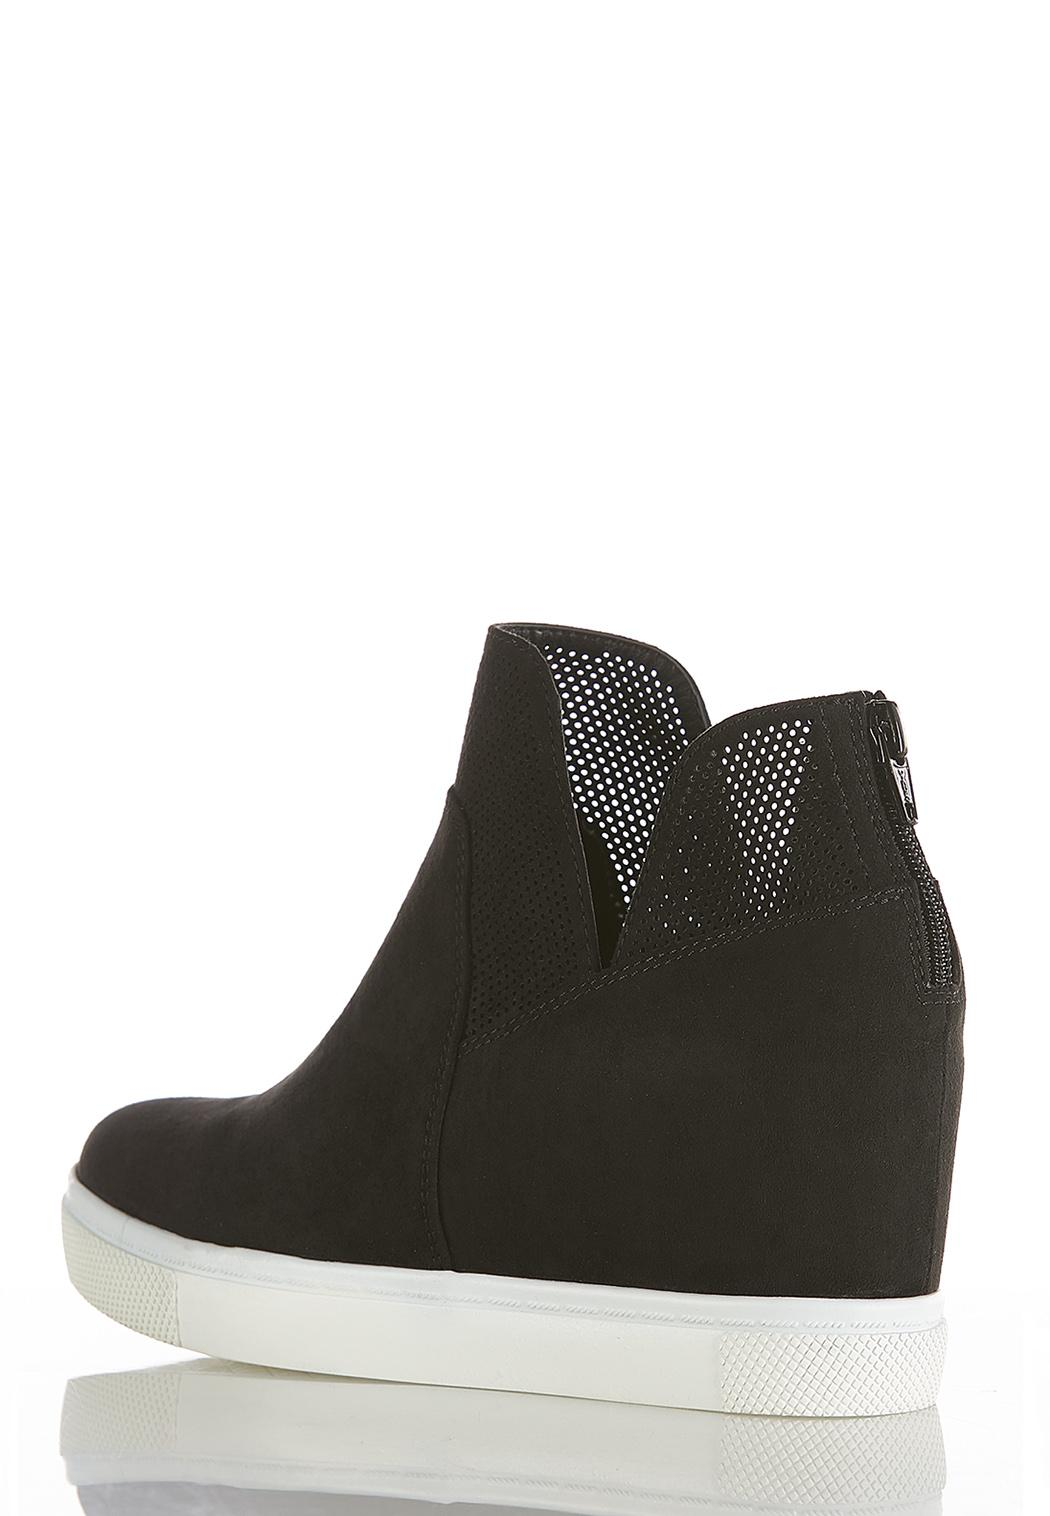 Perforated High-Top Wedge Sneakers (Item #44369040)